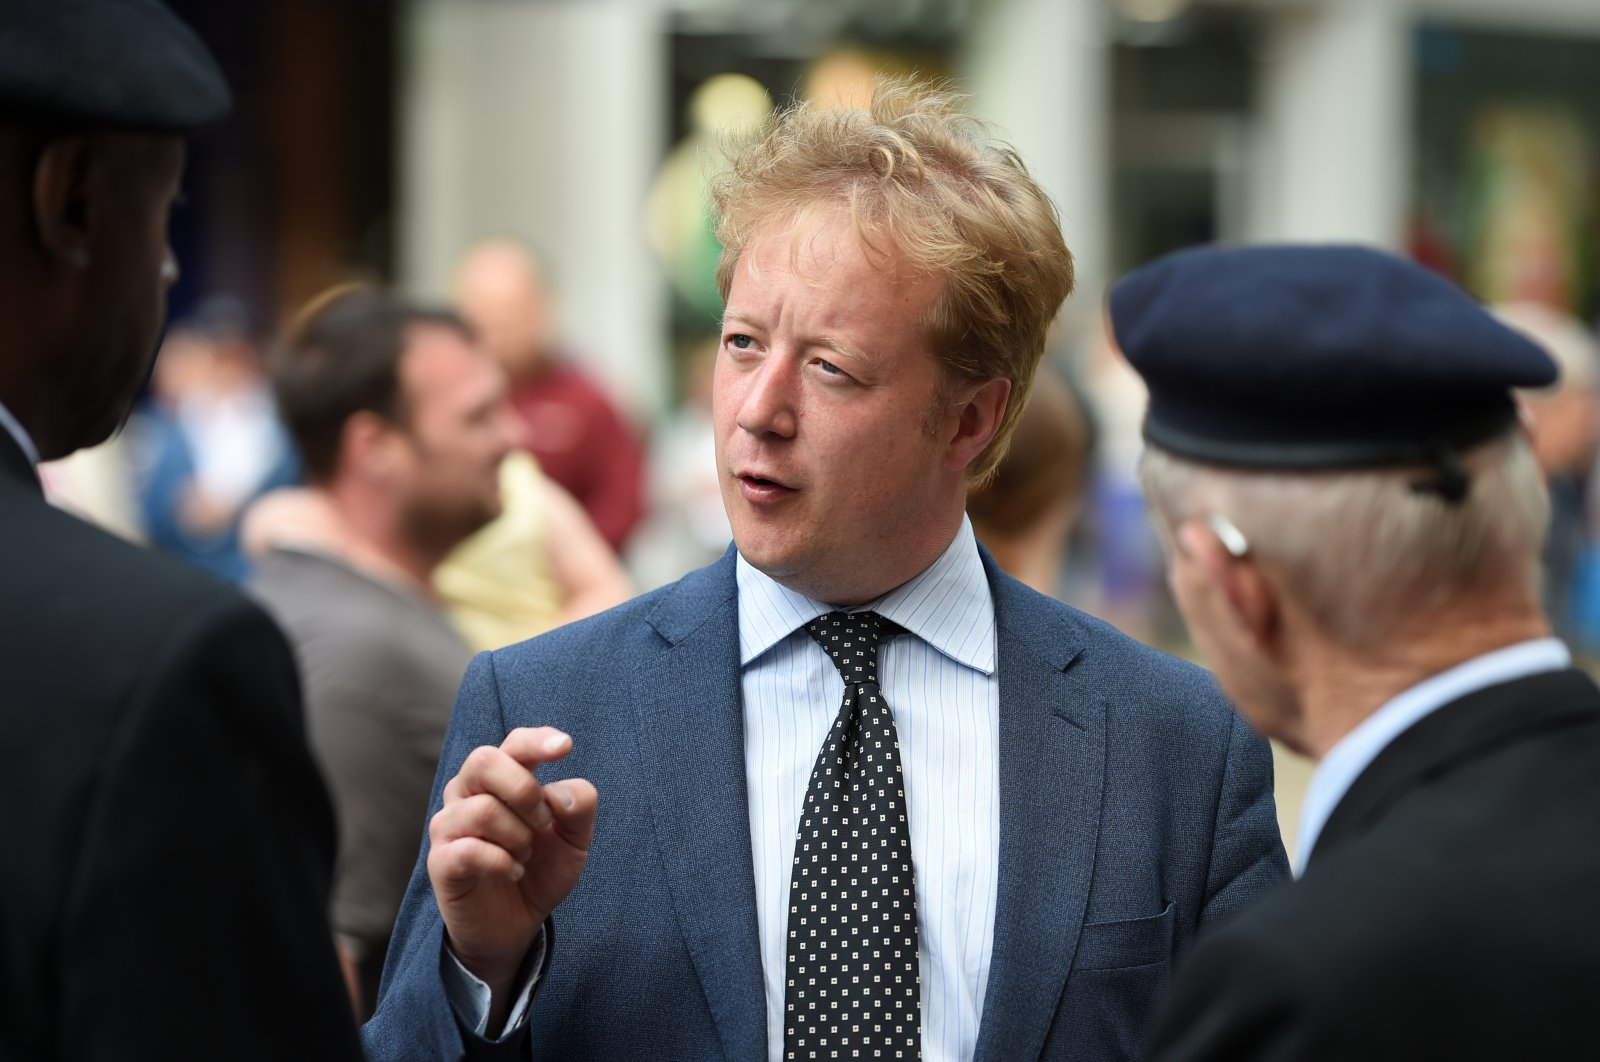 Conservative party candidate Paul Bristow talks to veterans during a D-Day 75th anniversary event in Peterborough o June 6, 2019. (Reuters Photo)